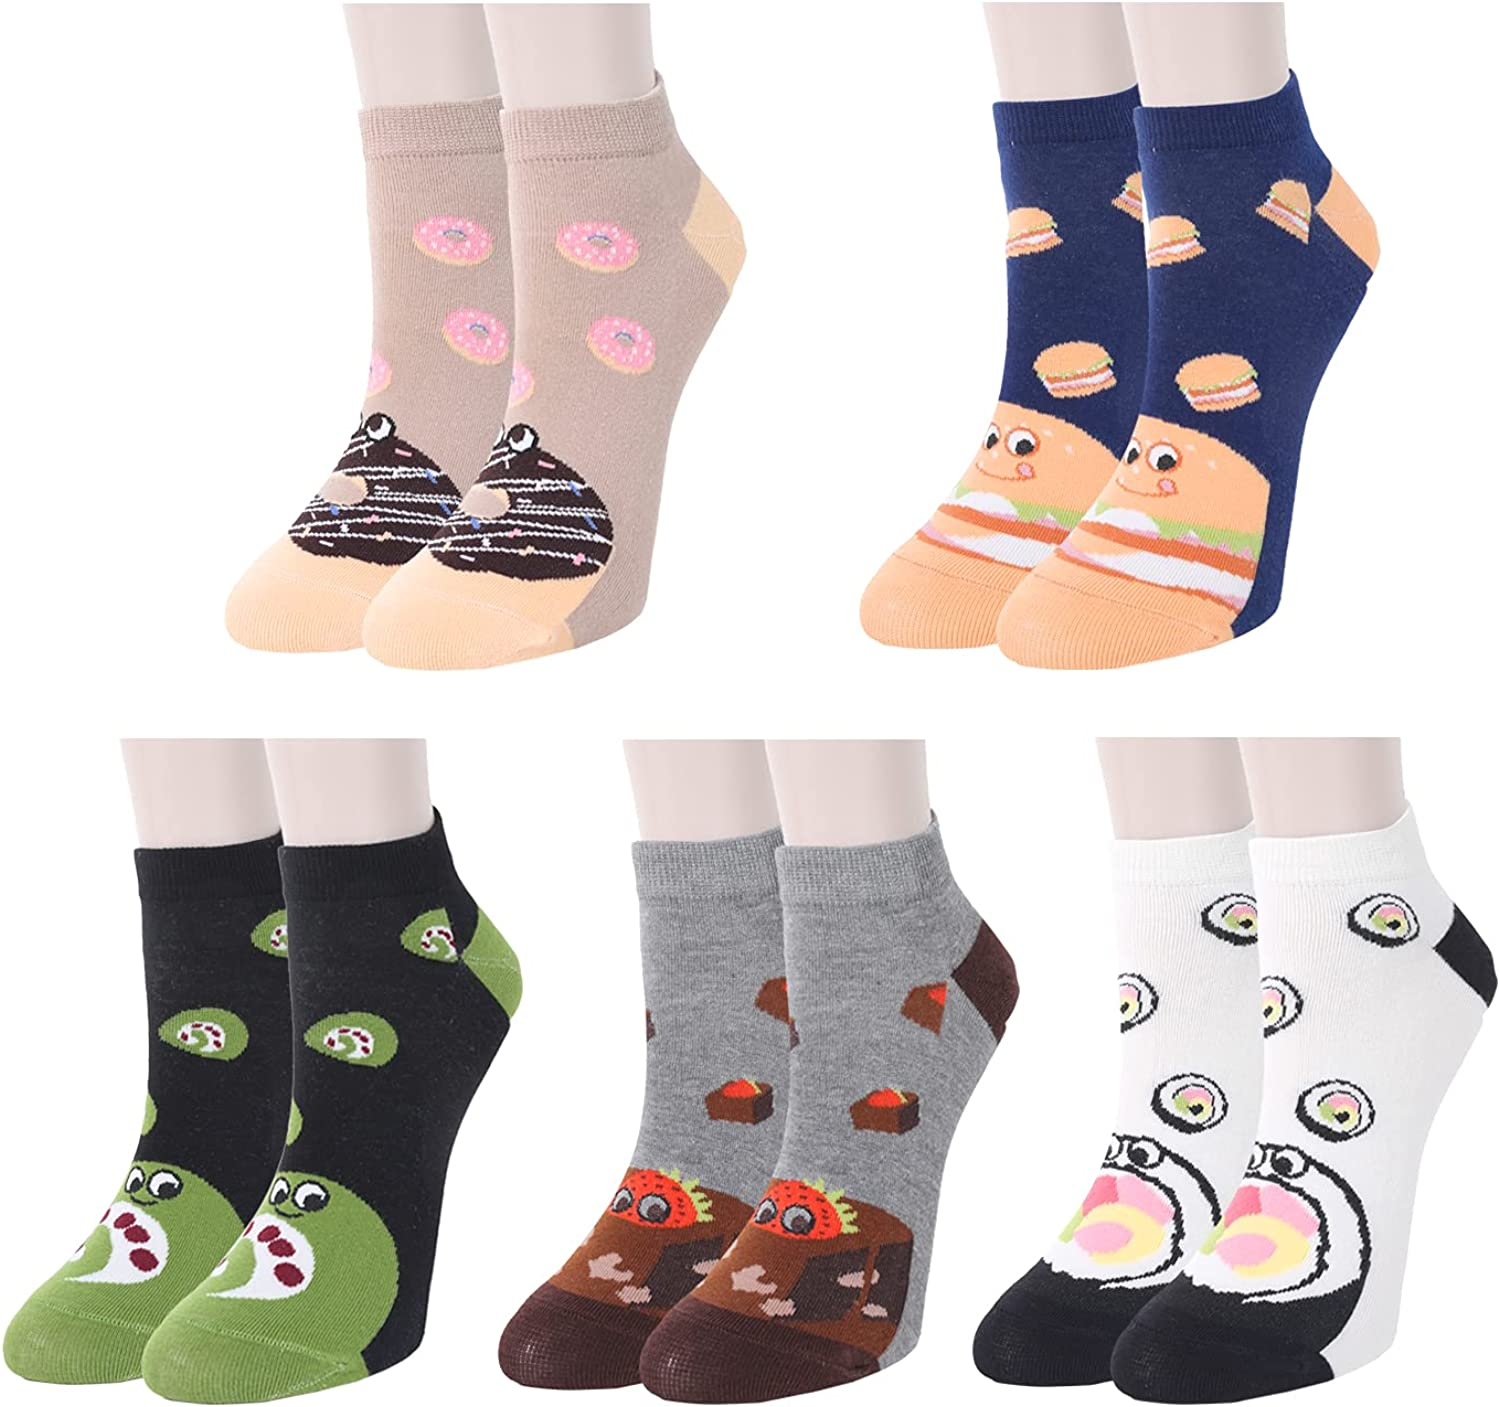 Womens Ankle Socks for Girls Cute Funny Max 45% OFF Cut Cotton Fashionable Low Soft Cozy